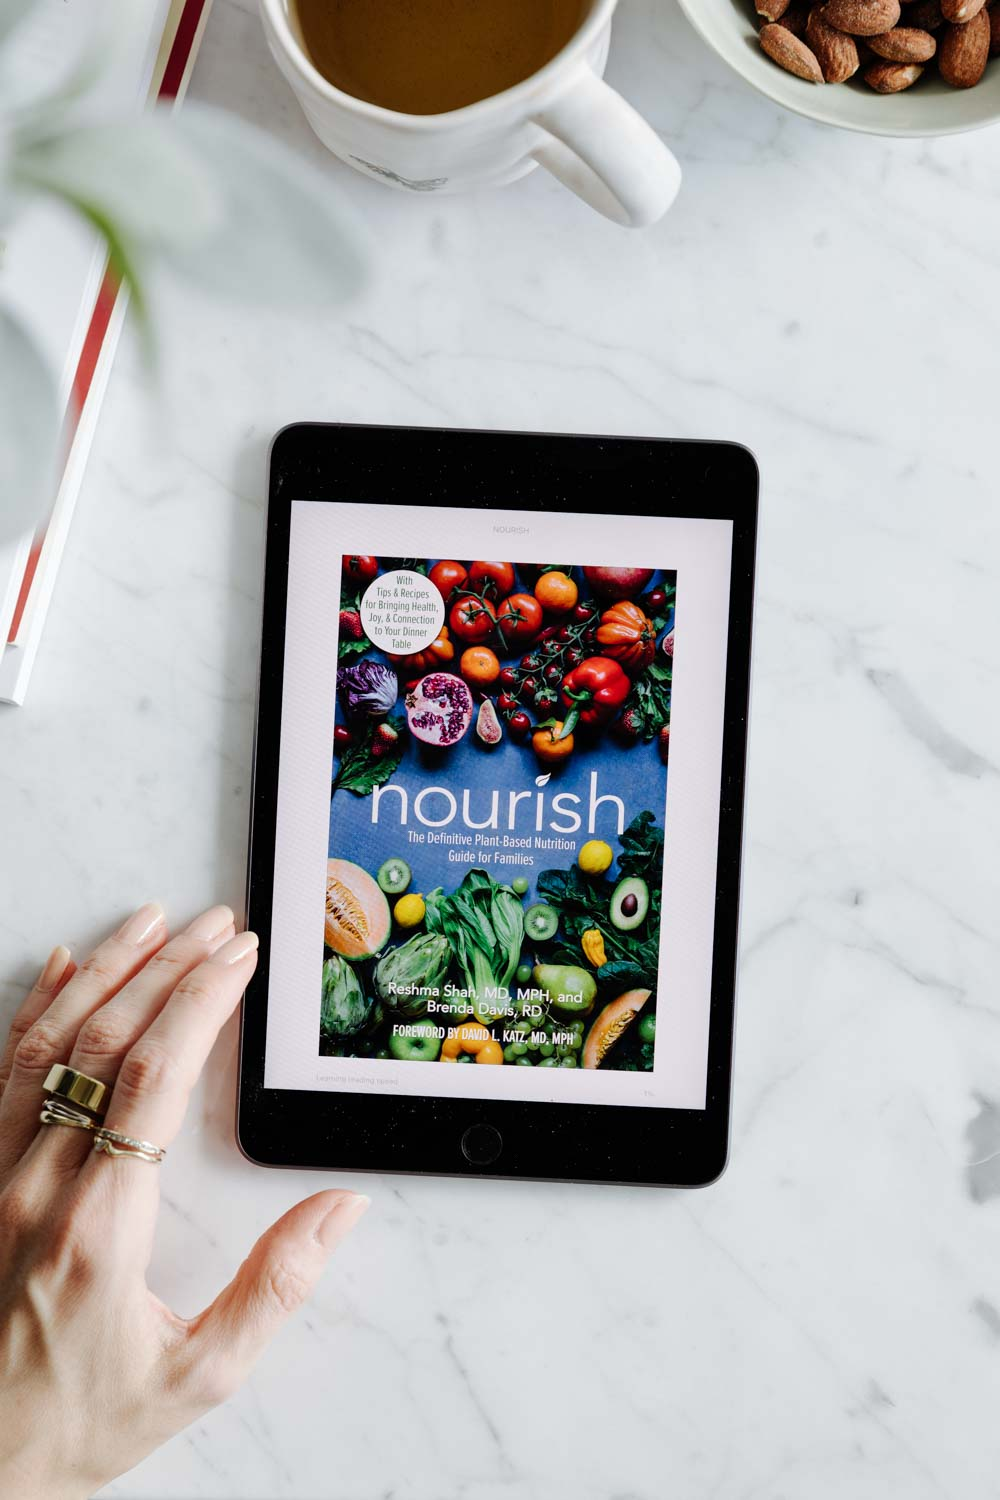 an ipad on a white marble table with a colorful book cover and a hand with rings next to it with a cup of tea, leaves and a bowl of almonds in the corner